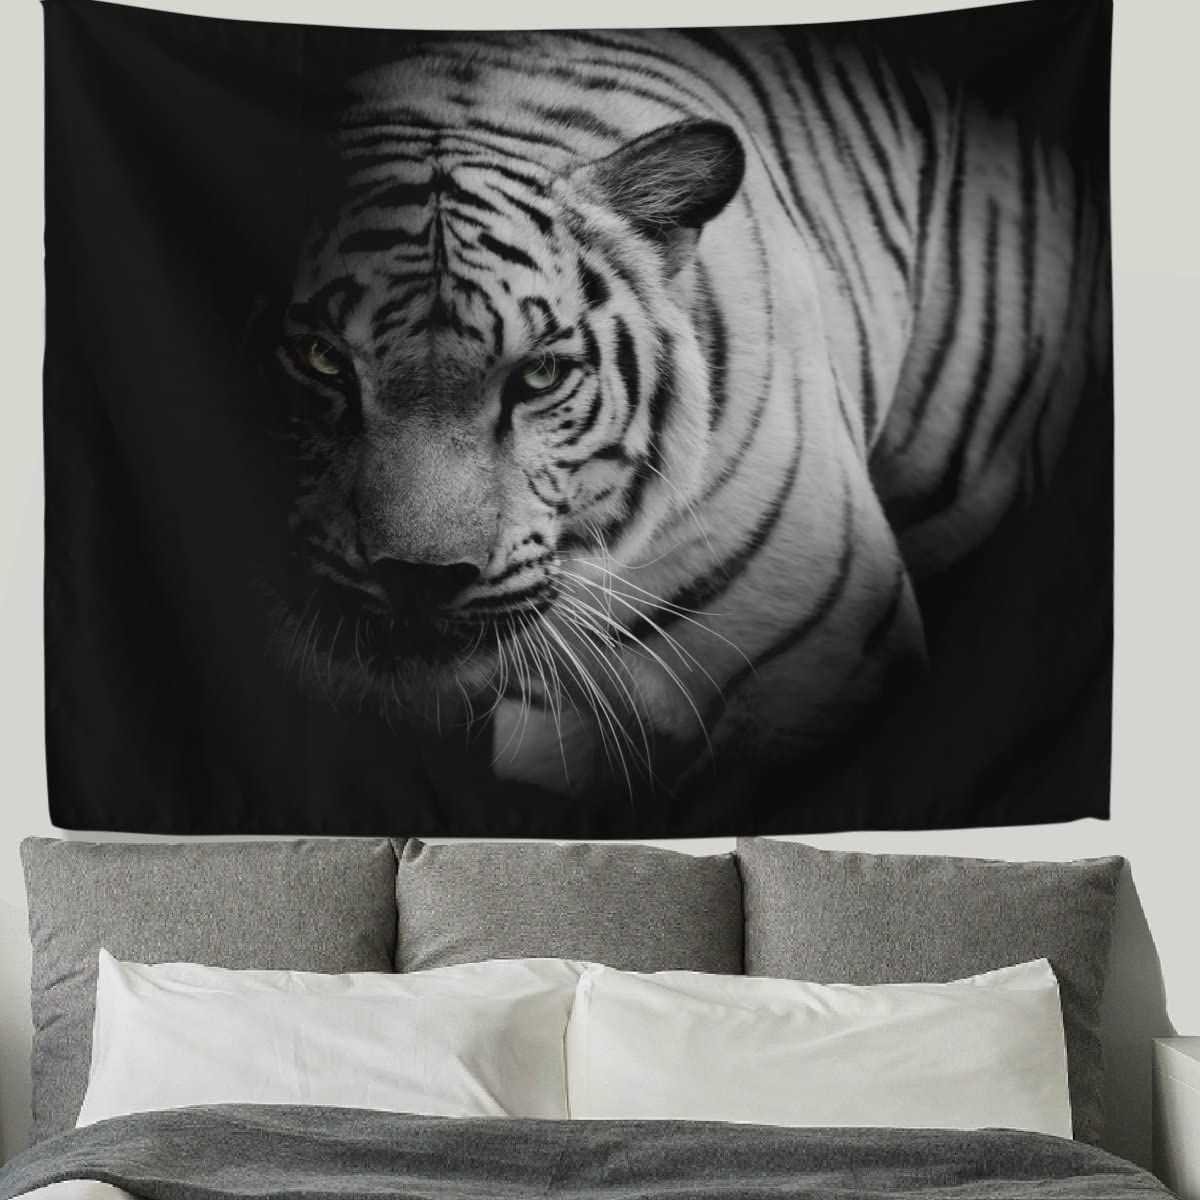 HMWR 90×60 Inch Tiger Tapestry Wall Hanging Cool Animal Bengal White Tiger Print Wall Fabric Tapestry Throw Artwork Home Decoration for Living Room Bedroom Dorm